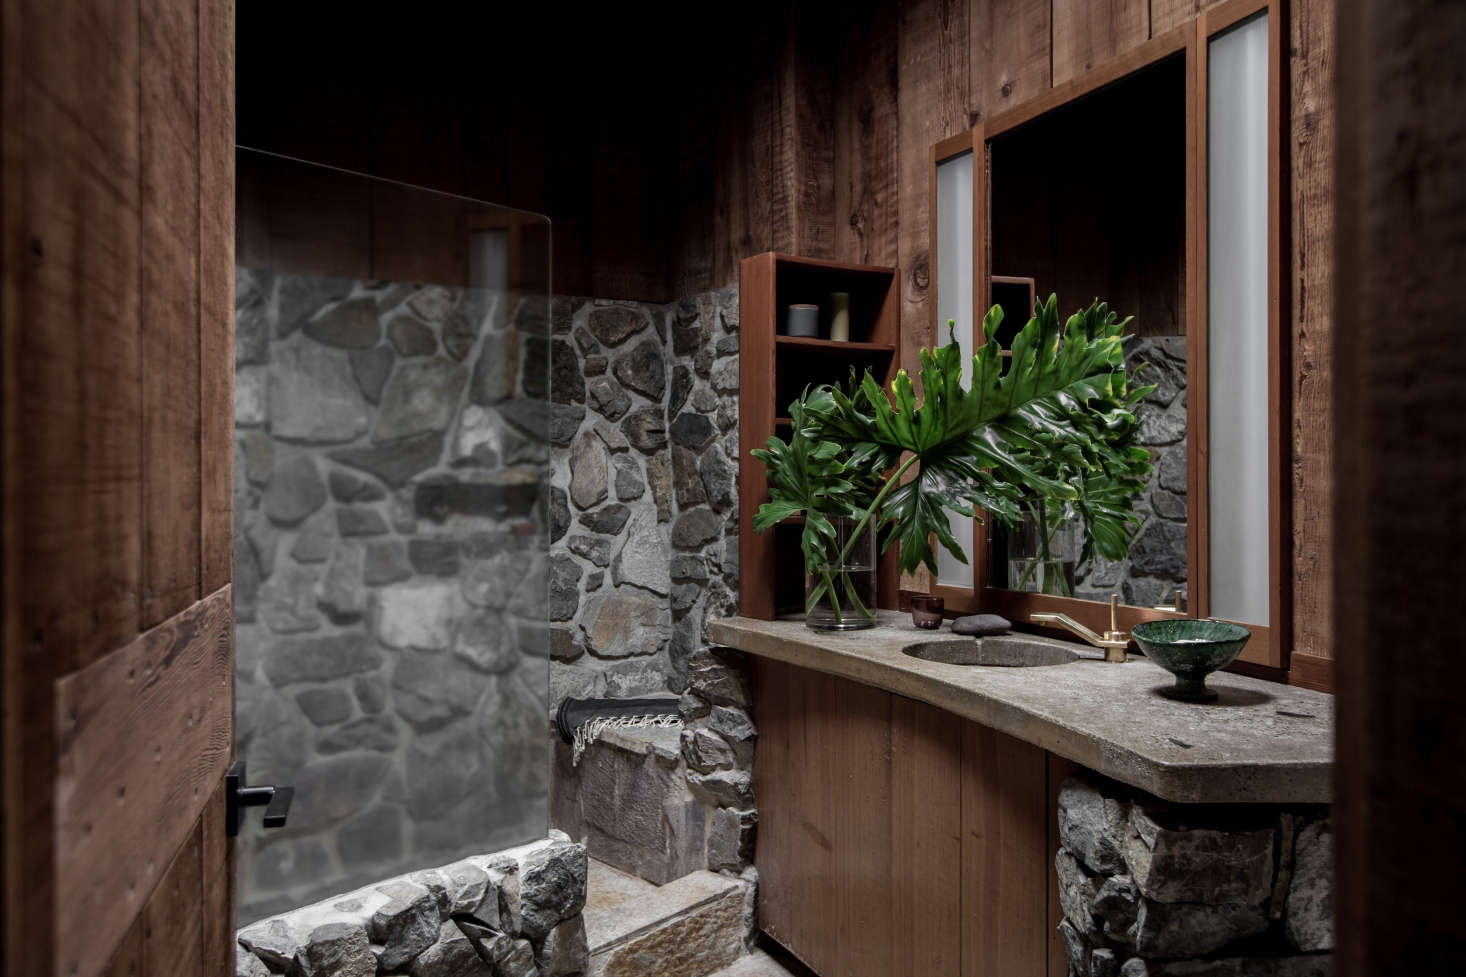 Original Redwood Paneling At The Esalen Institute In Big Sur, California,  Updated By Salt